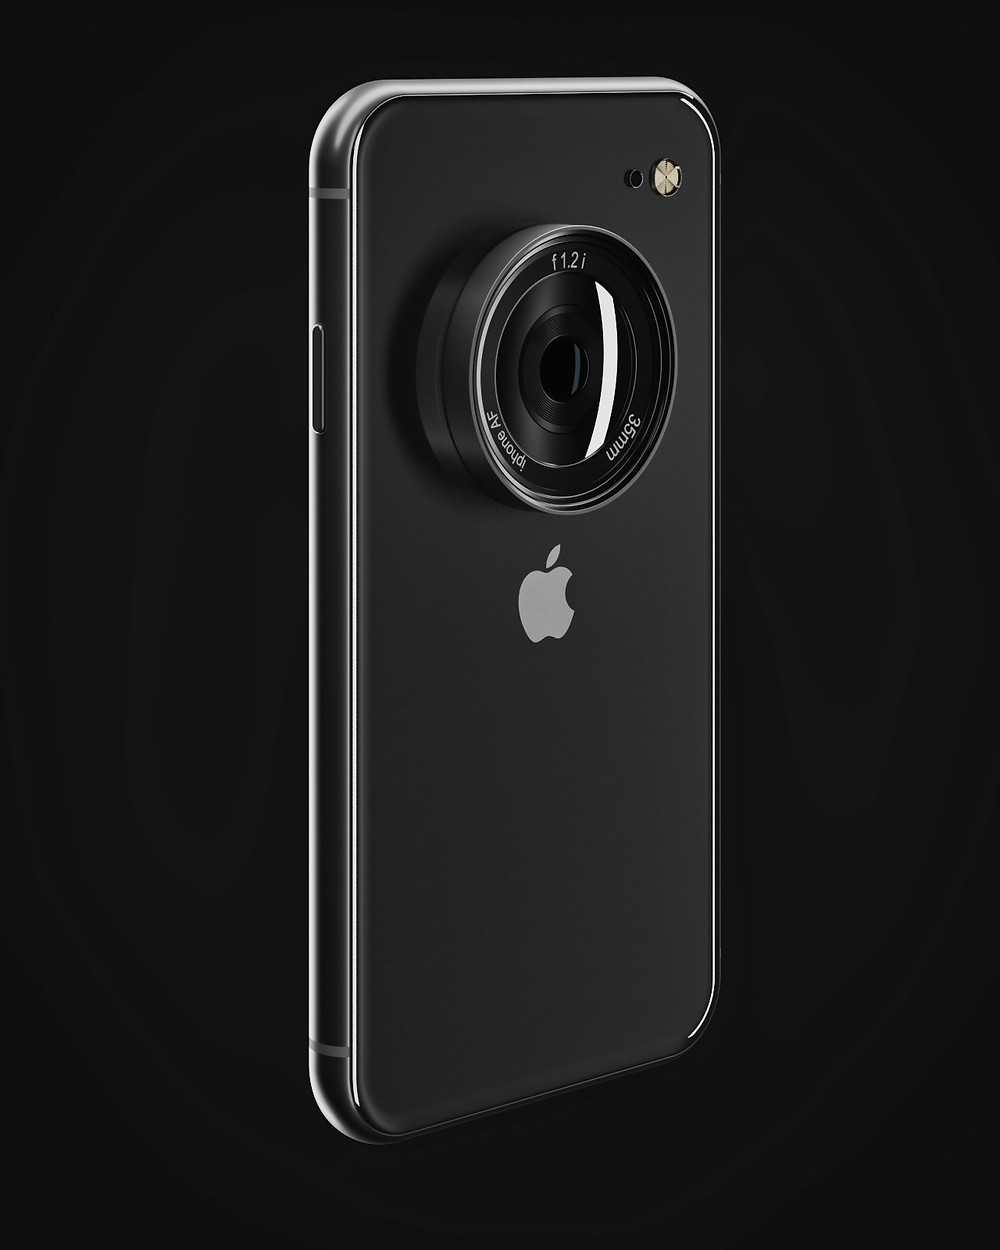 apple,iphone,icam,apple iphone,icam apple,